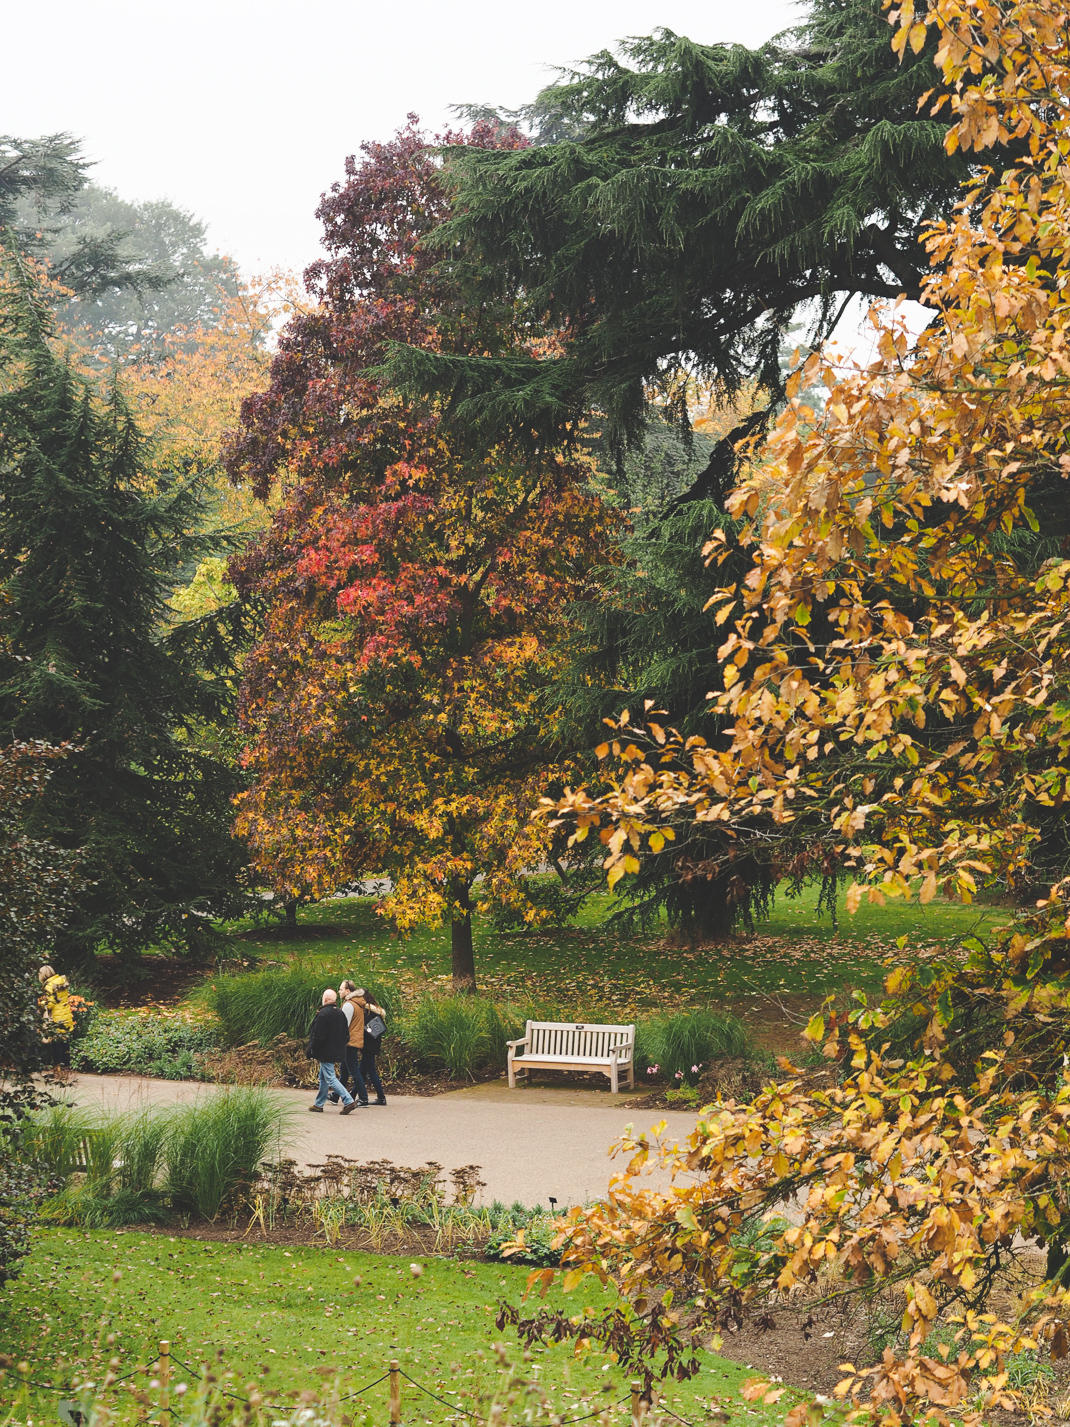 Colorful Autumn Leaves at Kew Gardens